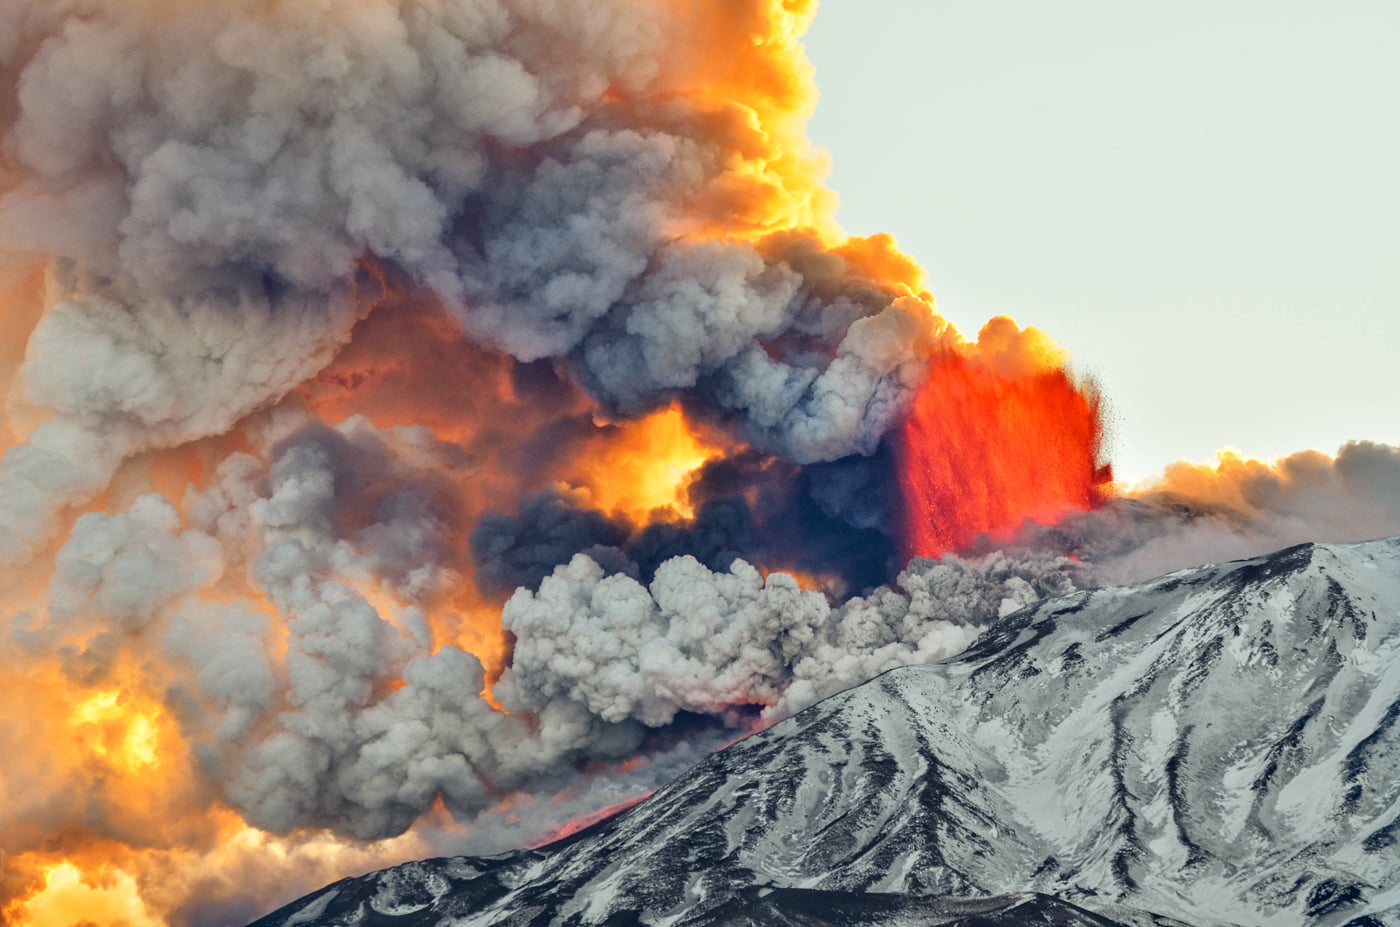 Lava fountain during Etna's paroxysm this afternoon (image: Massimo Lo Giudice / facebook)